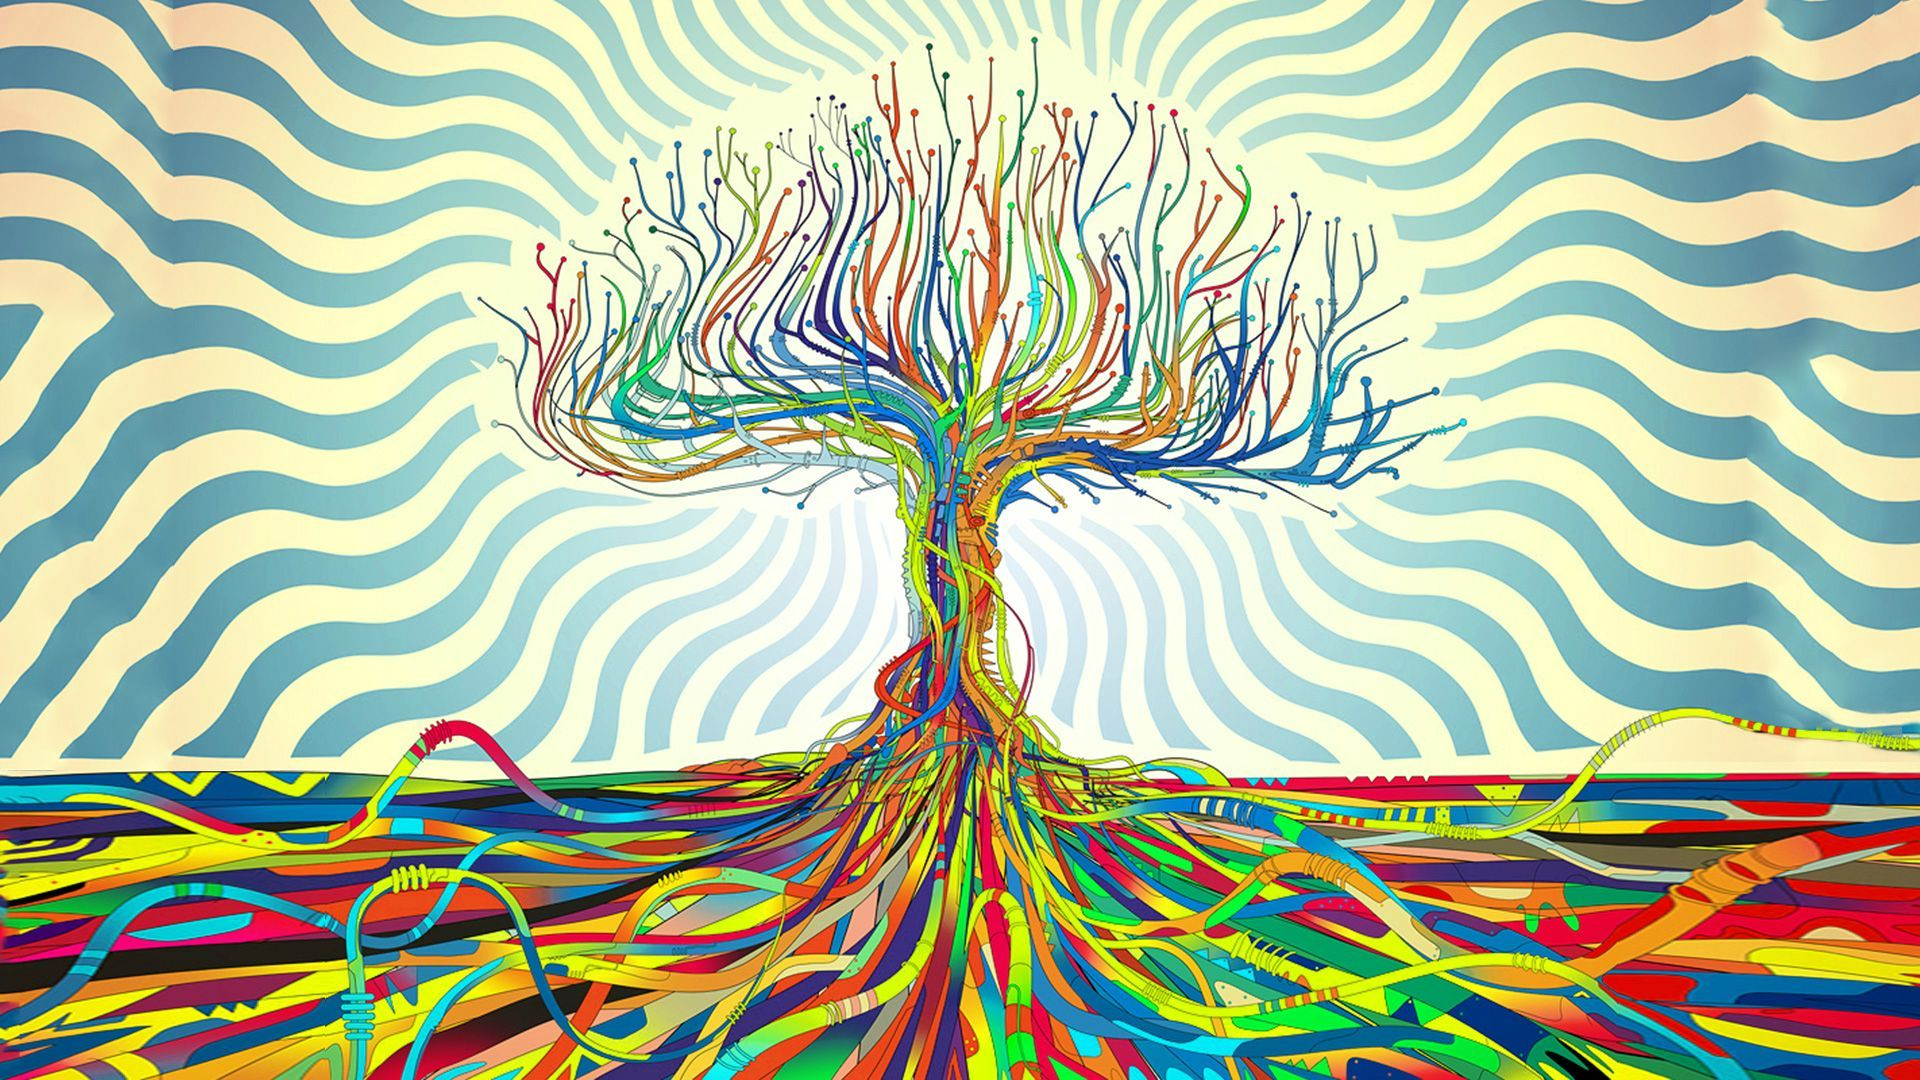 Abstract Tree Backgrounds Hd Wallpapers Trippy Wallpaper